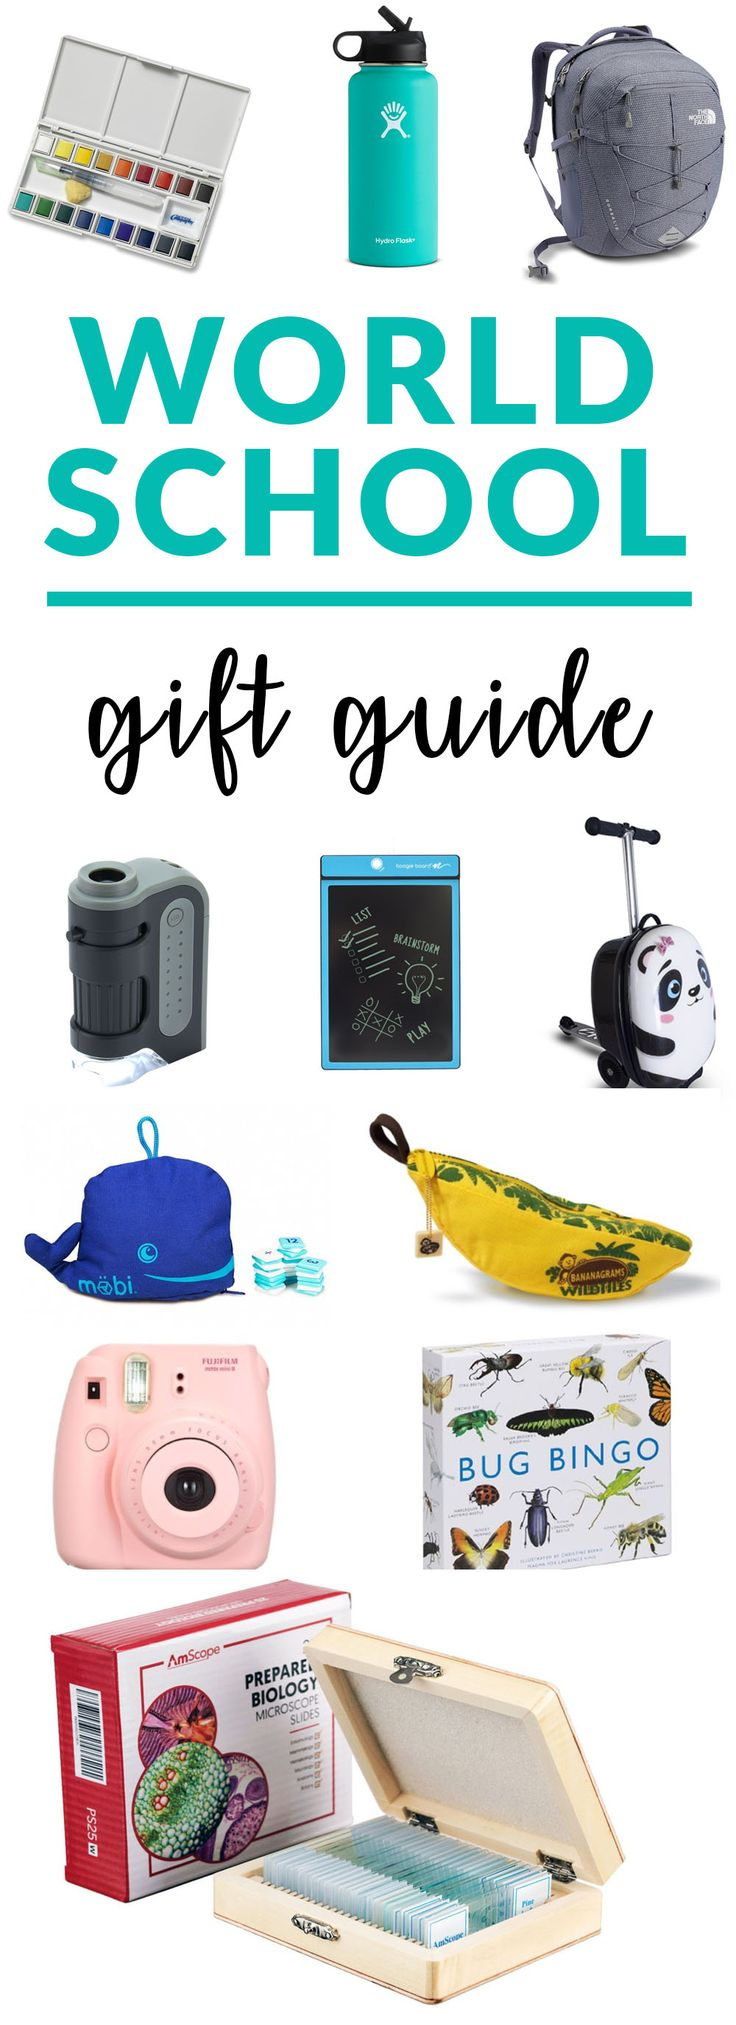 Worldschool Gift Guide. Find the best gifts for worldschoolers, travelers and homeschoolers. #travel #christmas #christmasgifts #worldschooling #worldschool #Homeschooling #homeschool